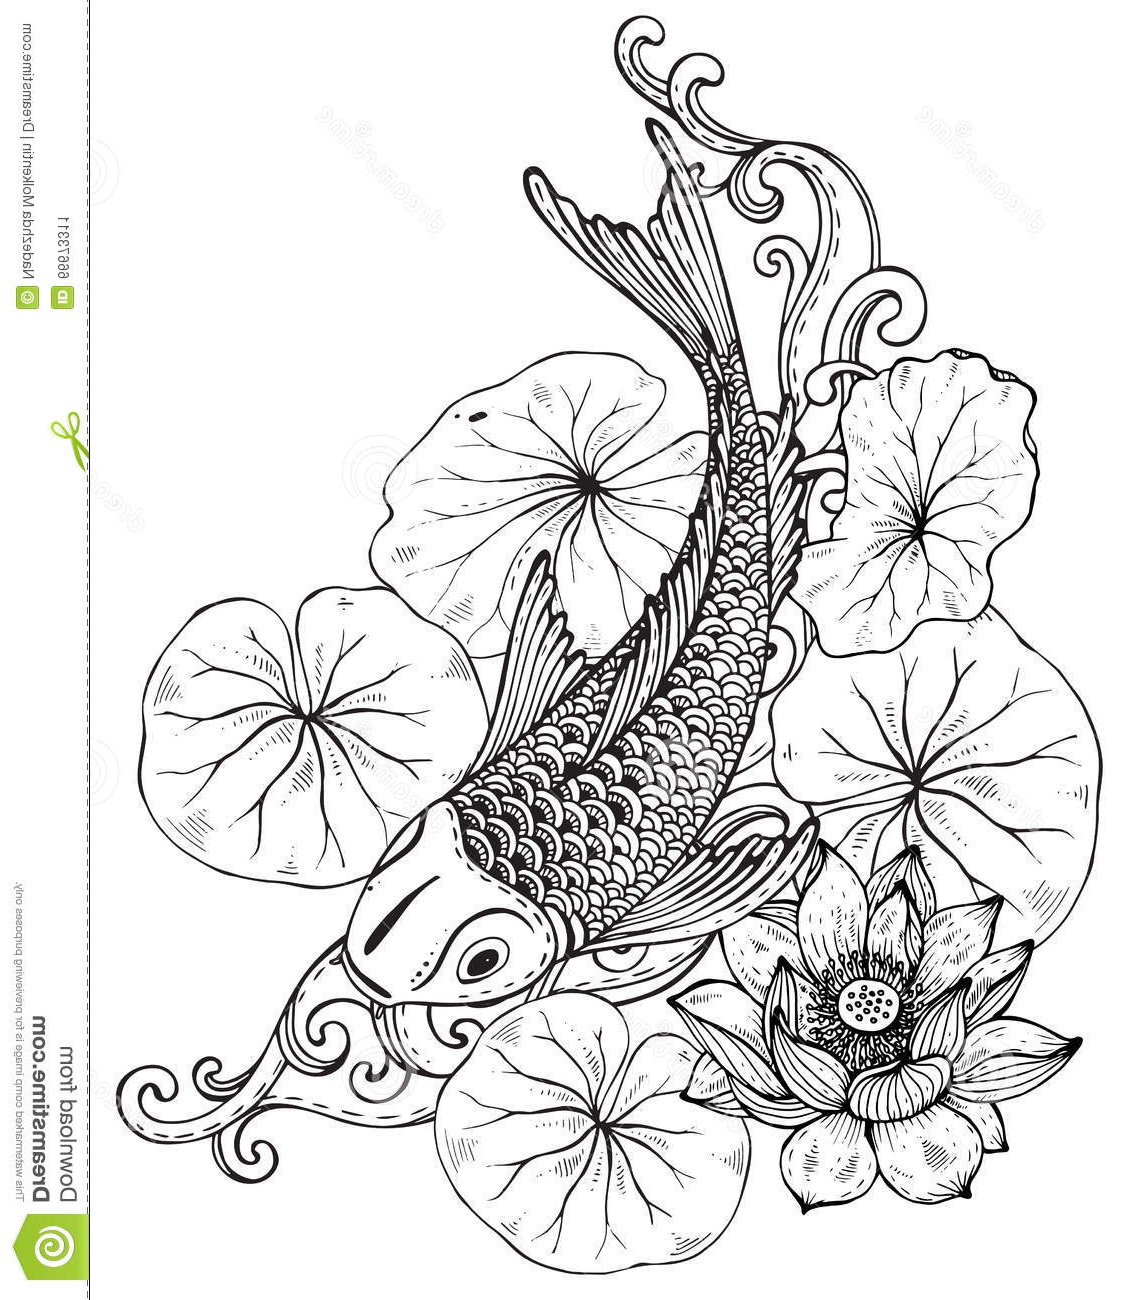 Koi fish drawing step by step at getdrawings free for personal koi fish tattoo design 1 1130x1300 drawing of lotus flower with leaf how to draw lotus step by step izmirmasajfo